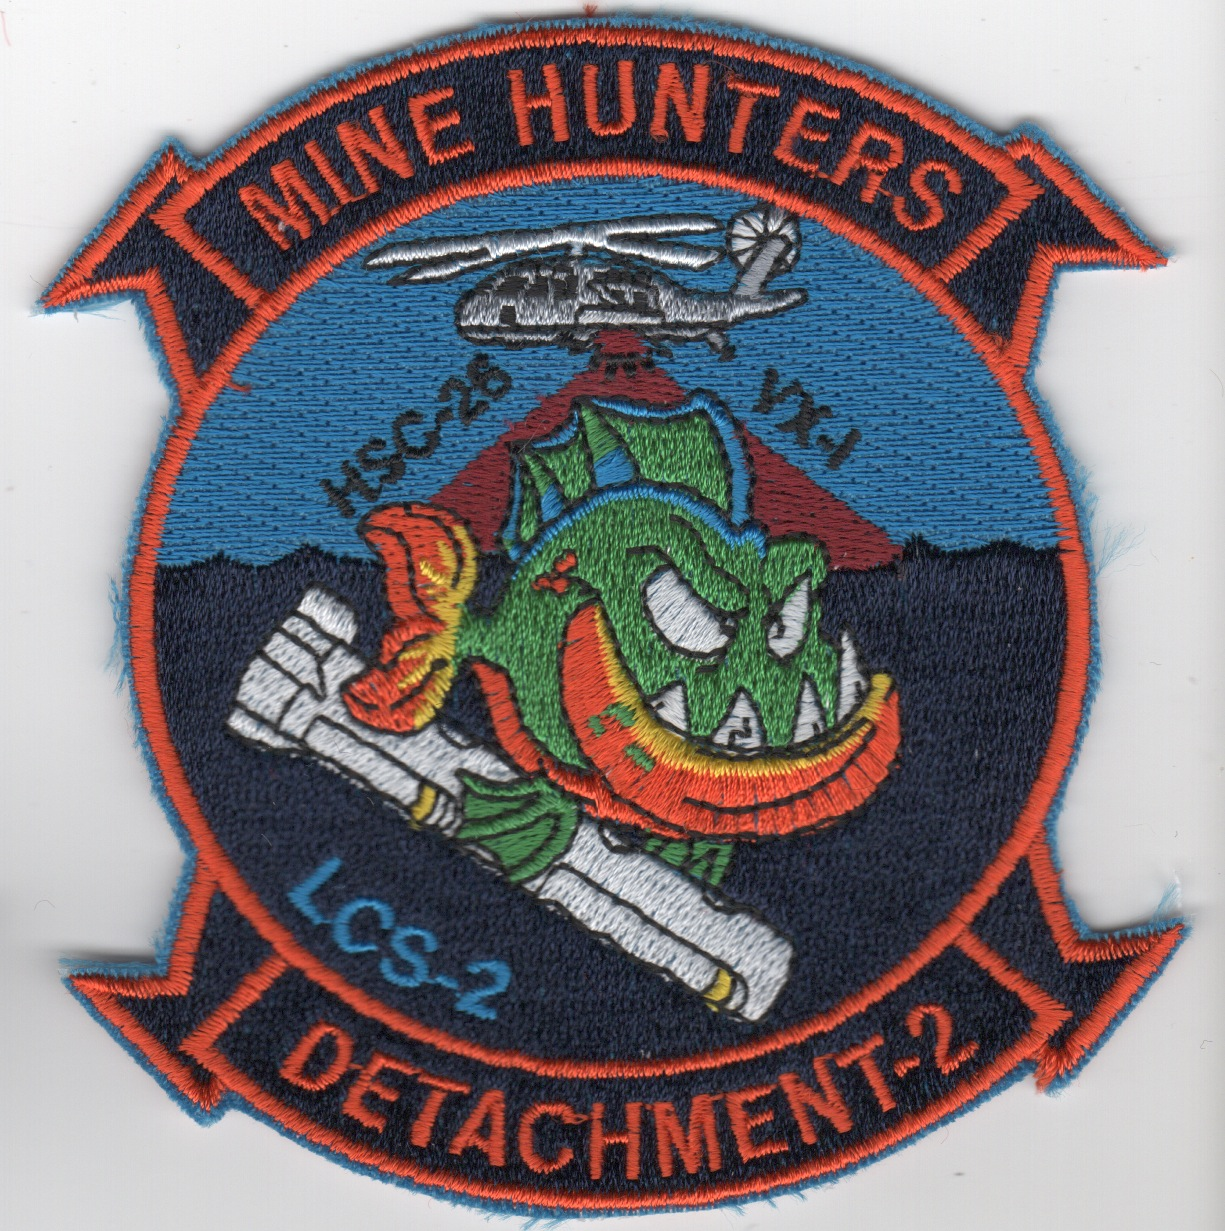 HSC-26 Det-2 'Minehunters' Patch